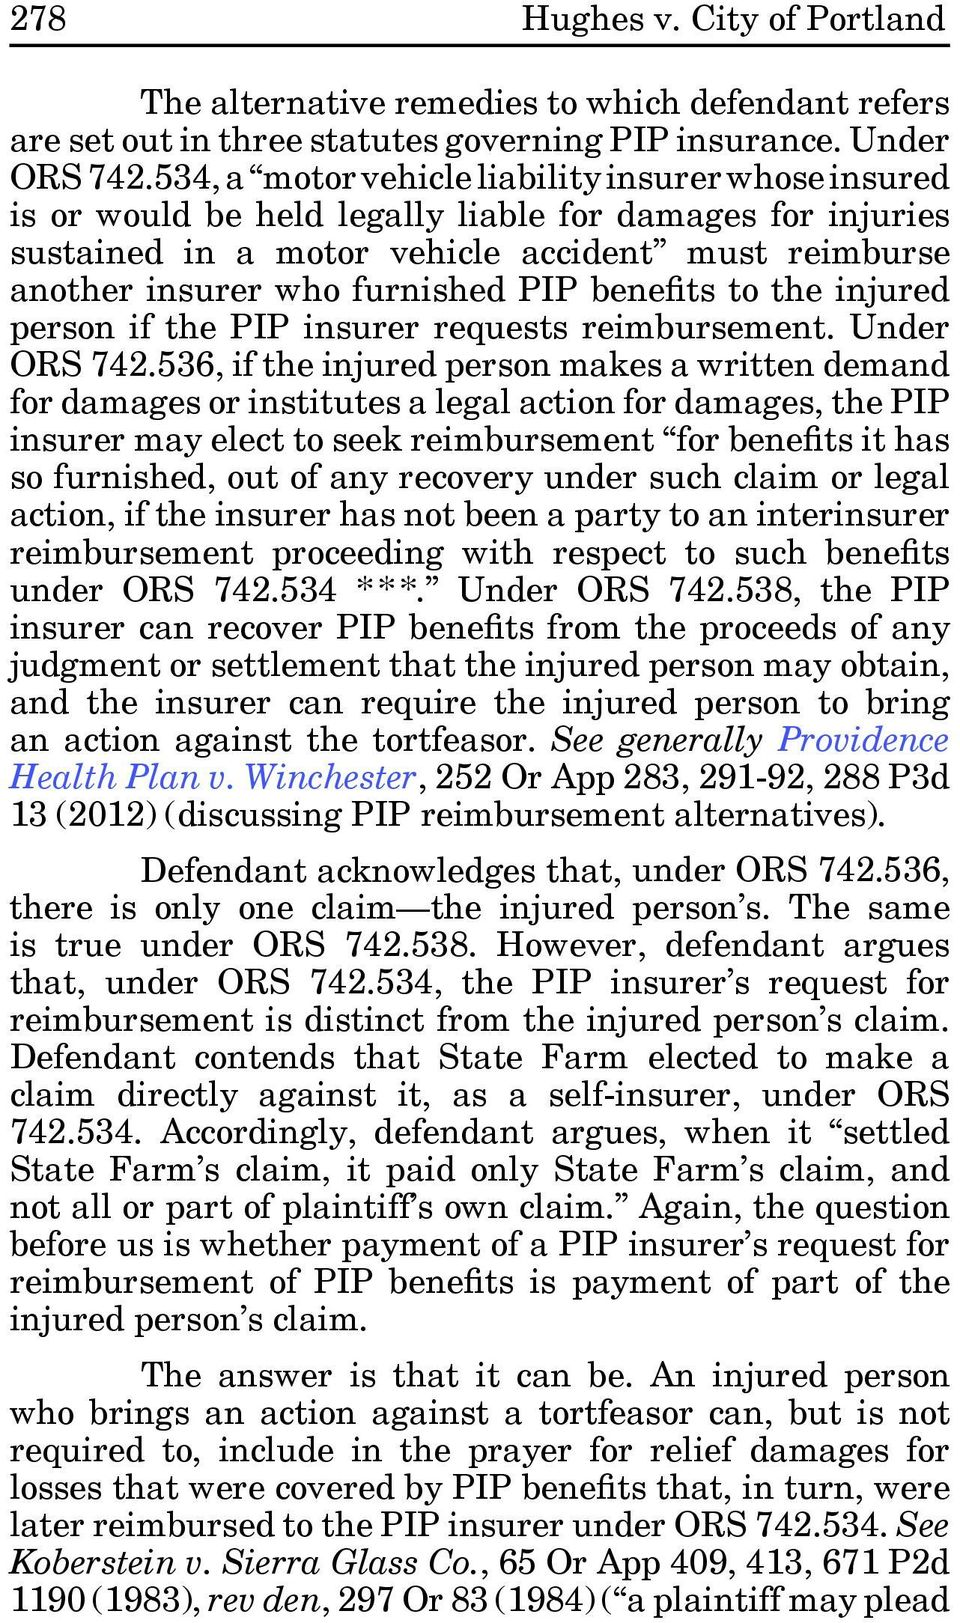 benefits to the injured person if the PIP insurer requests reimbursement. Under ORS 742.